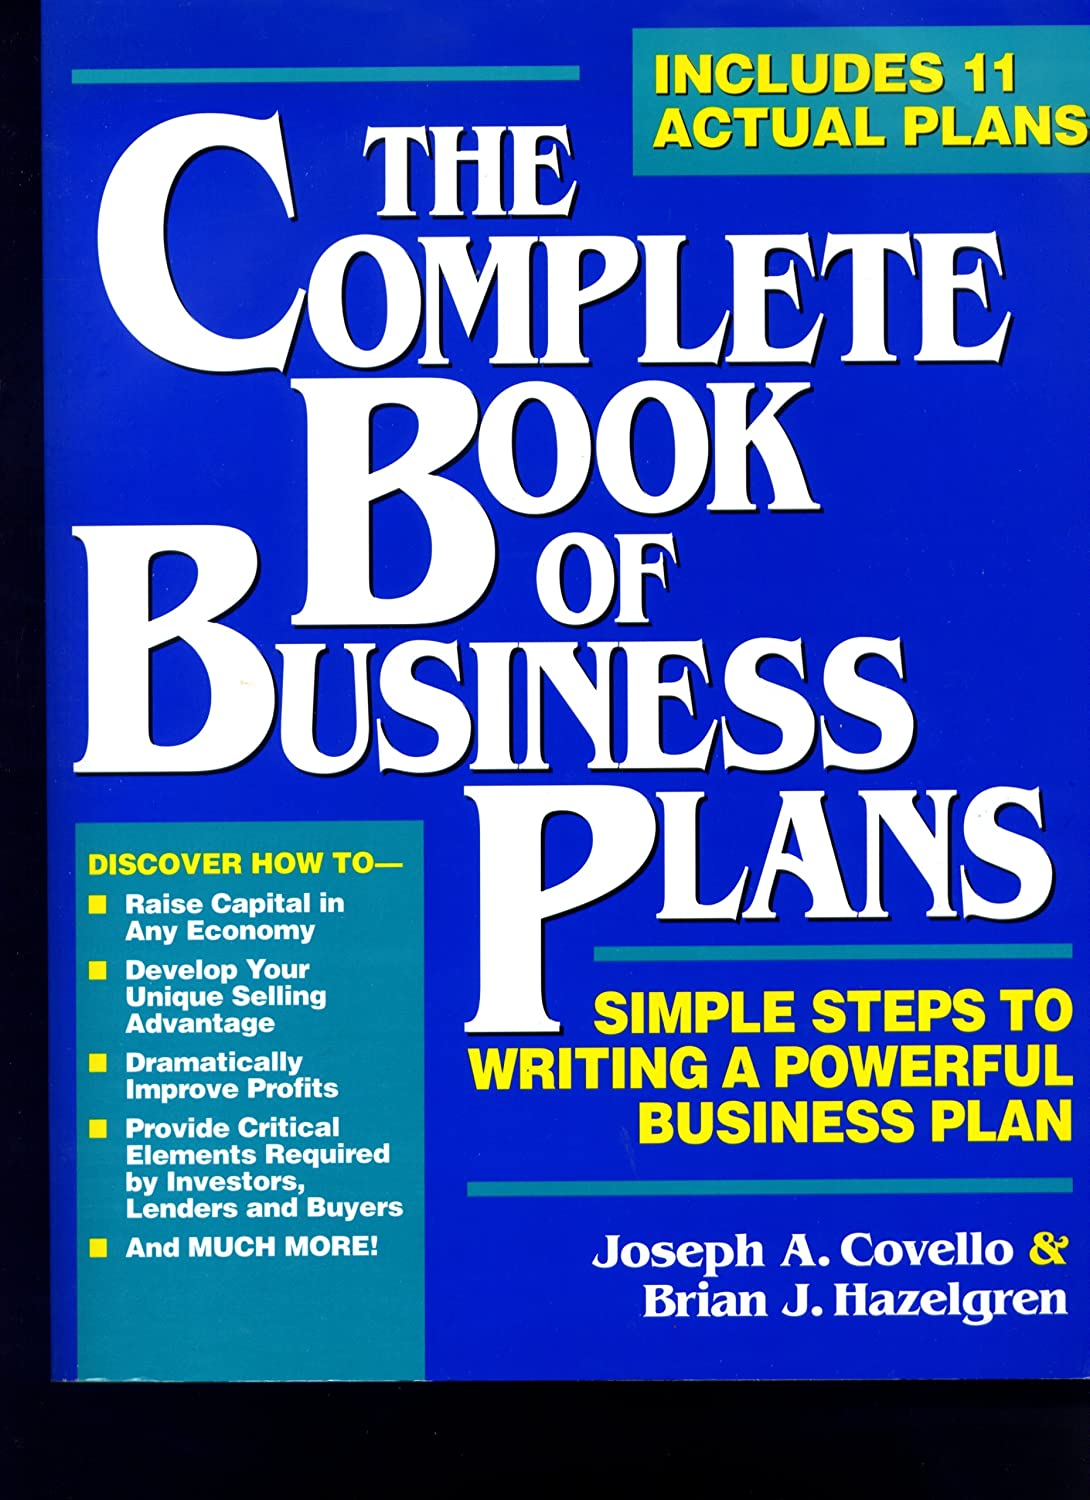 books ebooks online resources business plans campusguides cover art the complete book of business plans